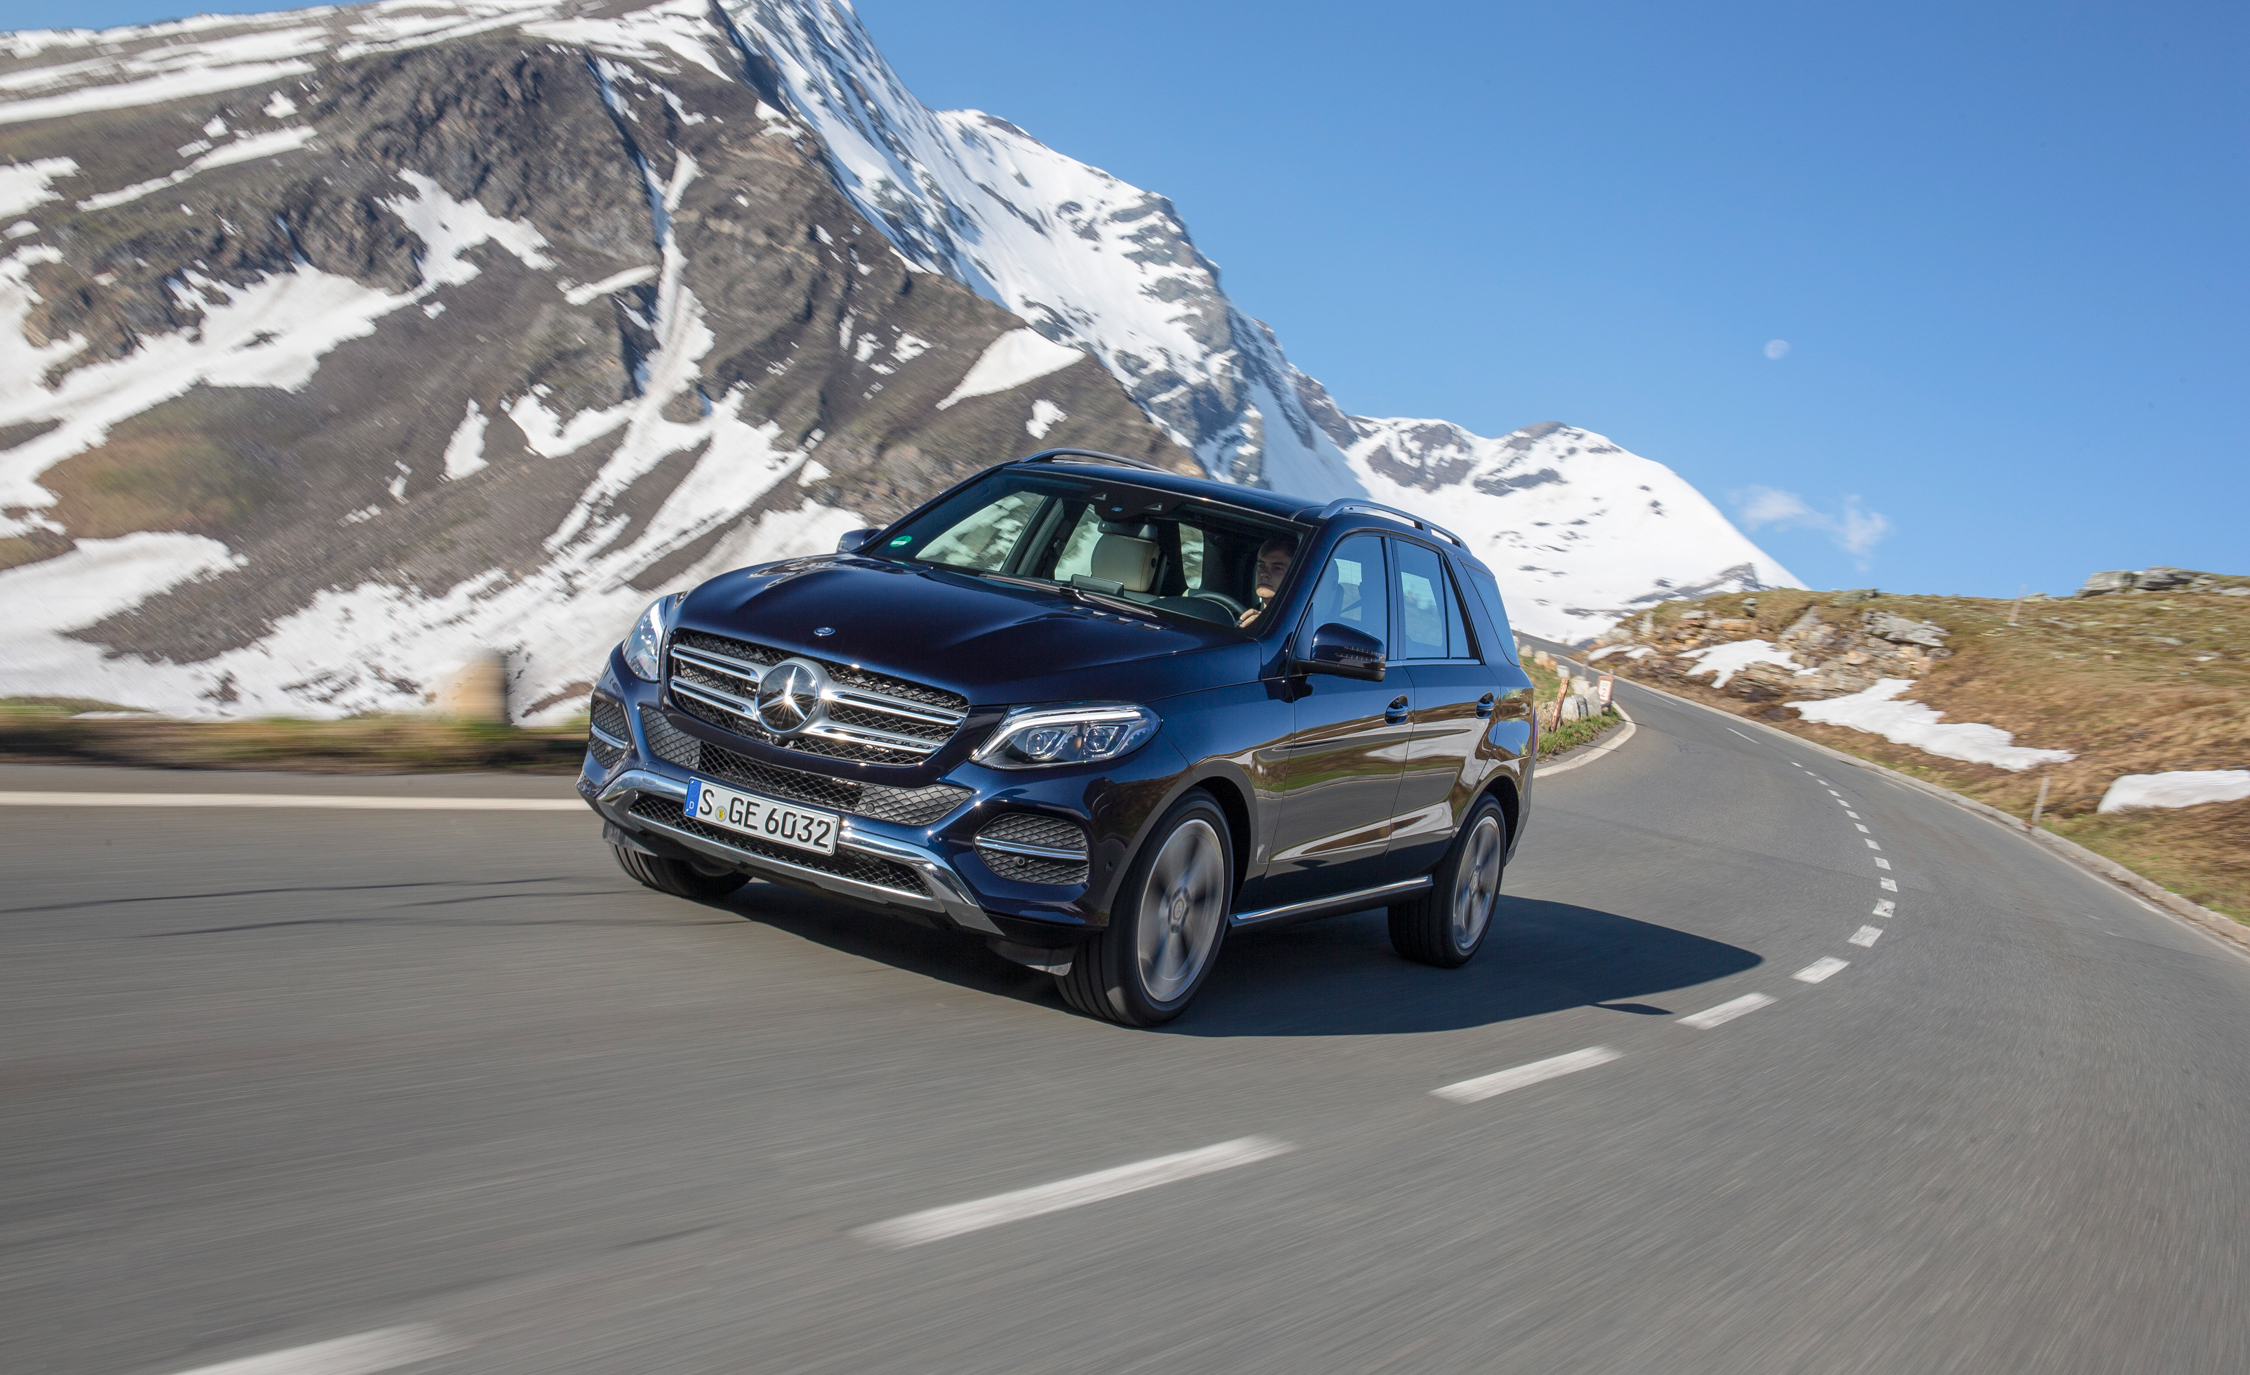 2016 Mercedes Benz GLE250d 4MATIC (Euro Spec) (Photo 7 of 43)